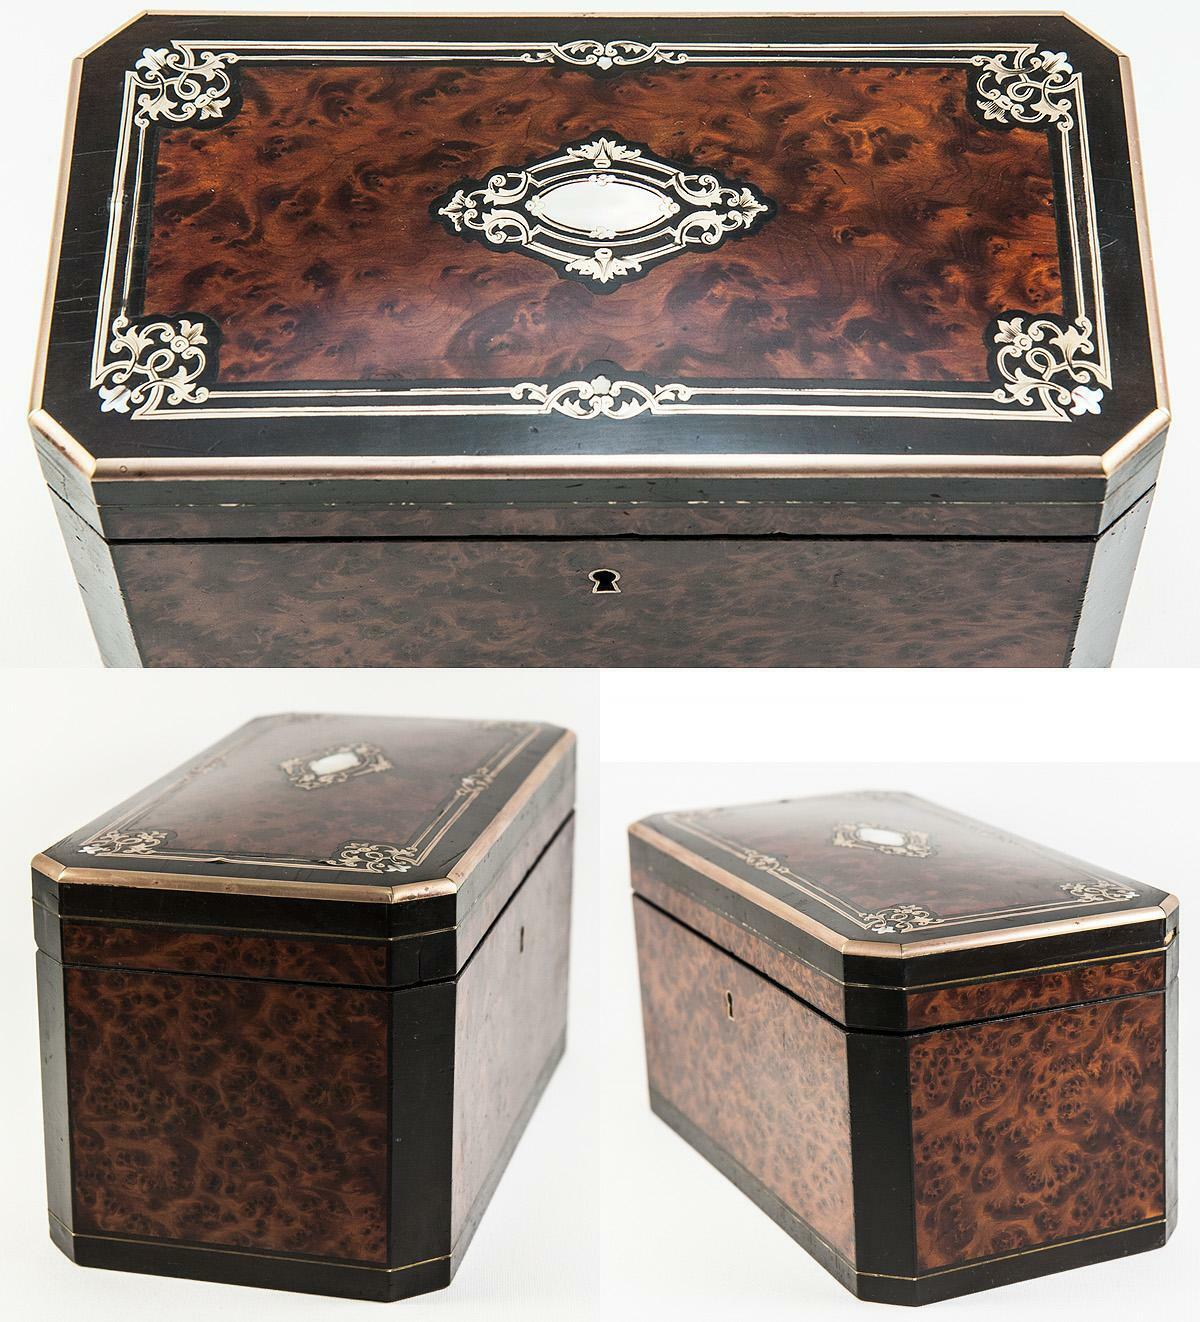 Antique French Tea Caddy, Napoleon III Boulle Brass Inlays, Double Well c. 1850s